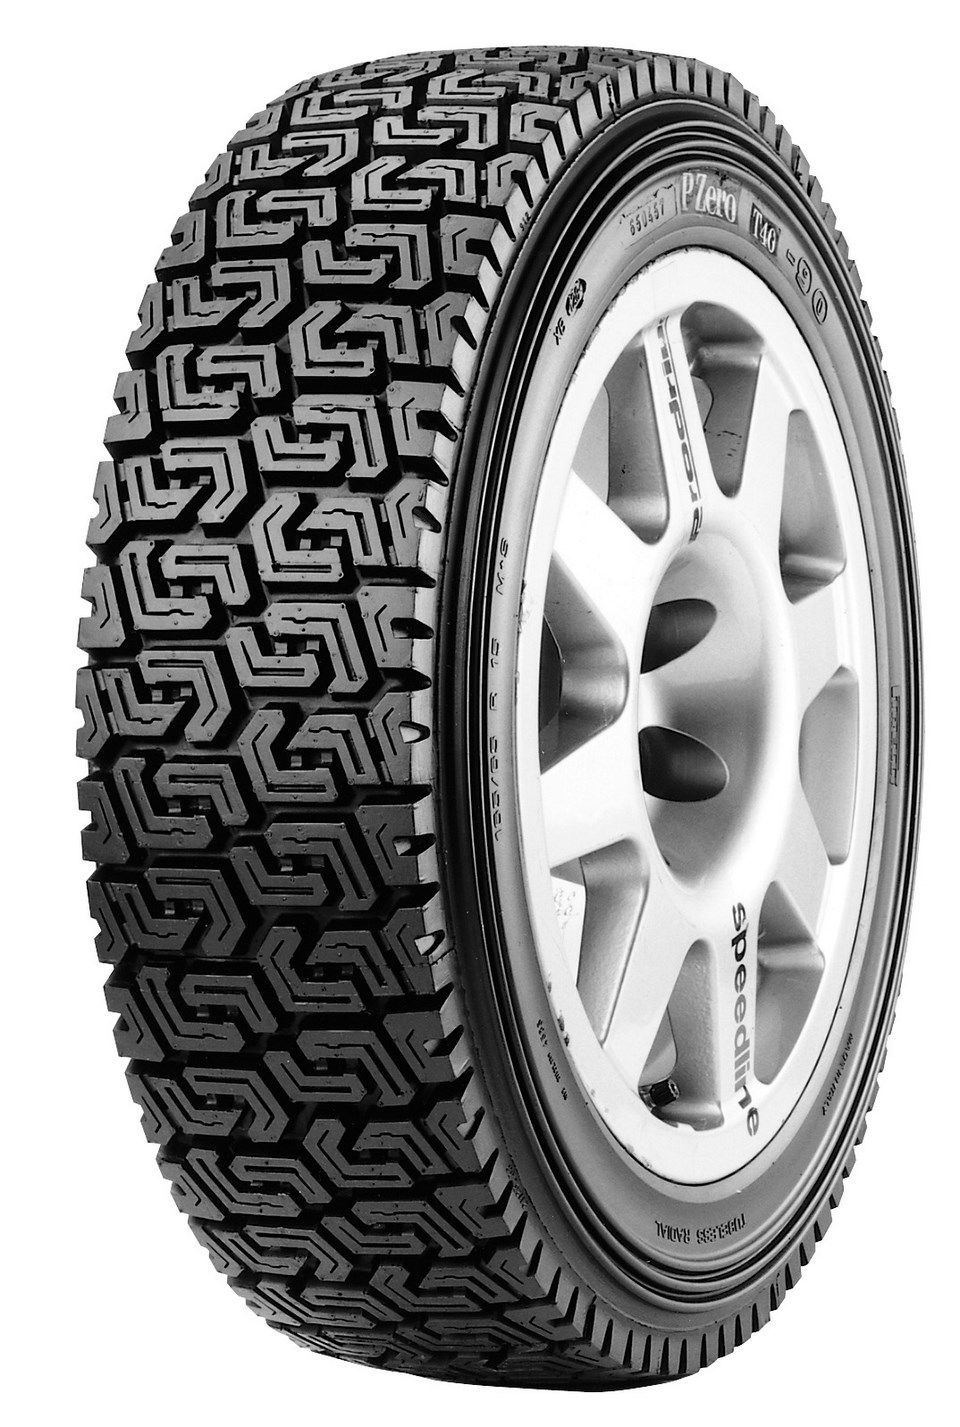 Pirelli Gravel And Winter Rally Tires Four Star Motorsports